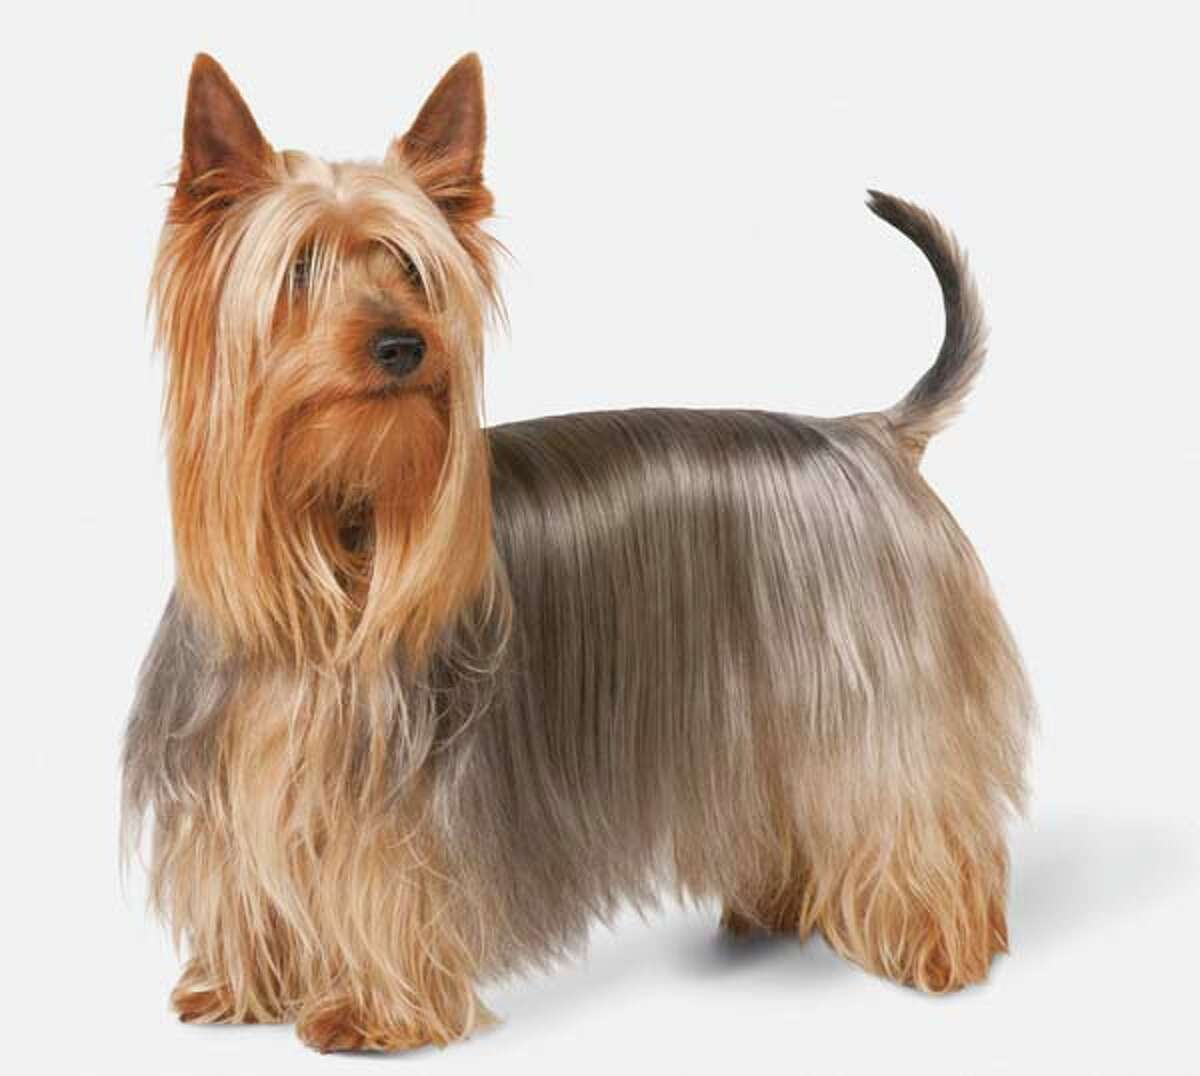 Silky Terrier Although they've always been bred as companions and reside in the AKC Toy Group, Silkys are nonetheless a bit more spirited and prey-driven than the typical lapdog - the breed retains a lot of the classic terrier independence. Silkys are closely associated with Sydney, Australia's largest city, and they make excellent urban companions.